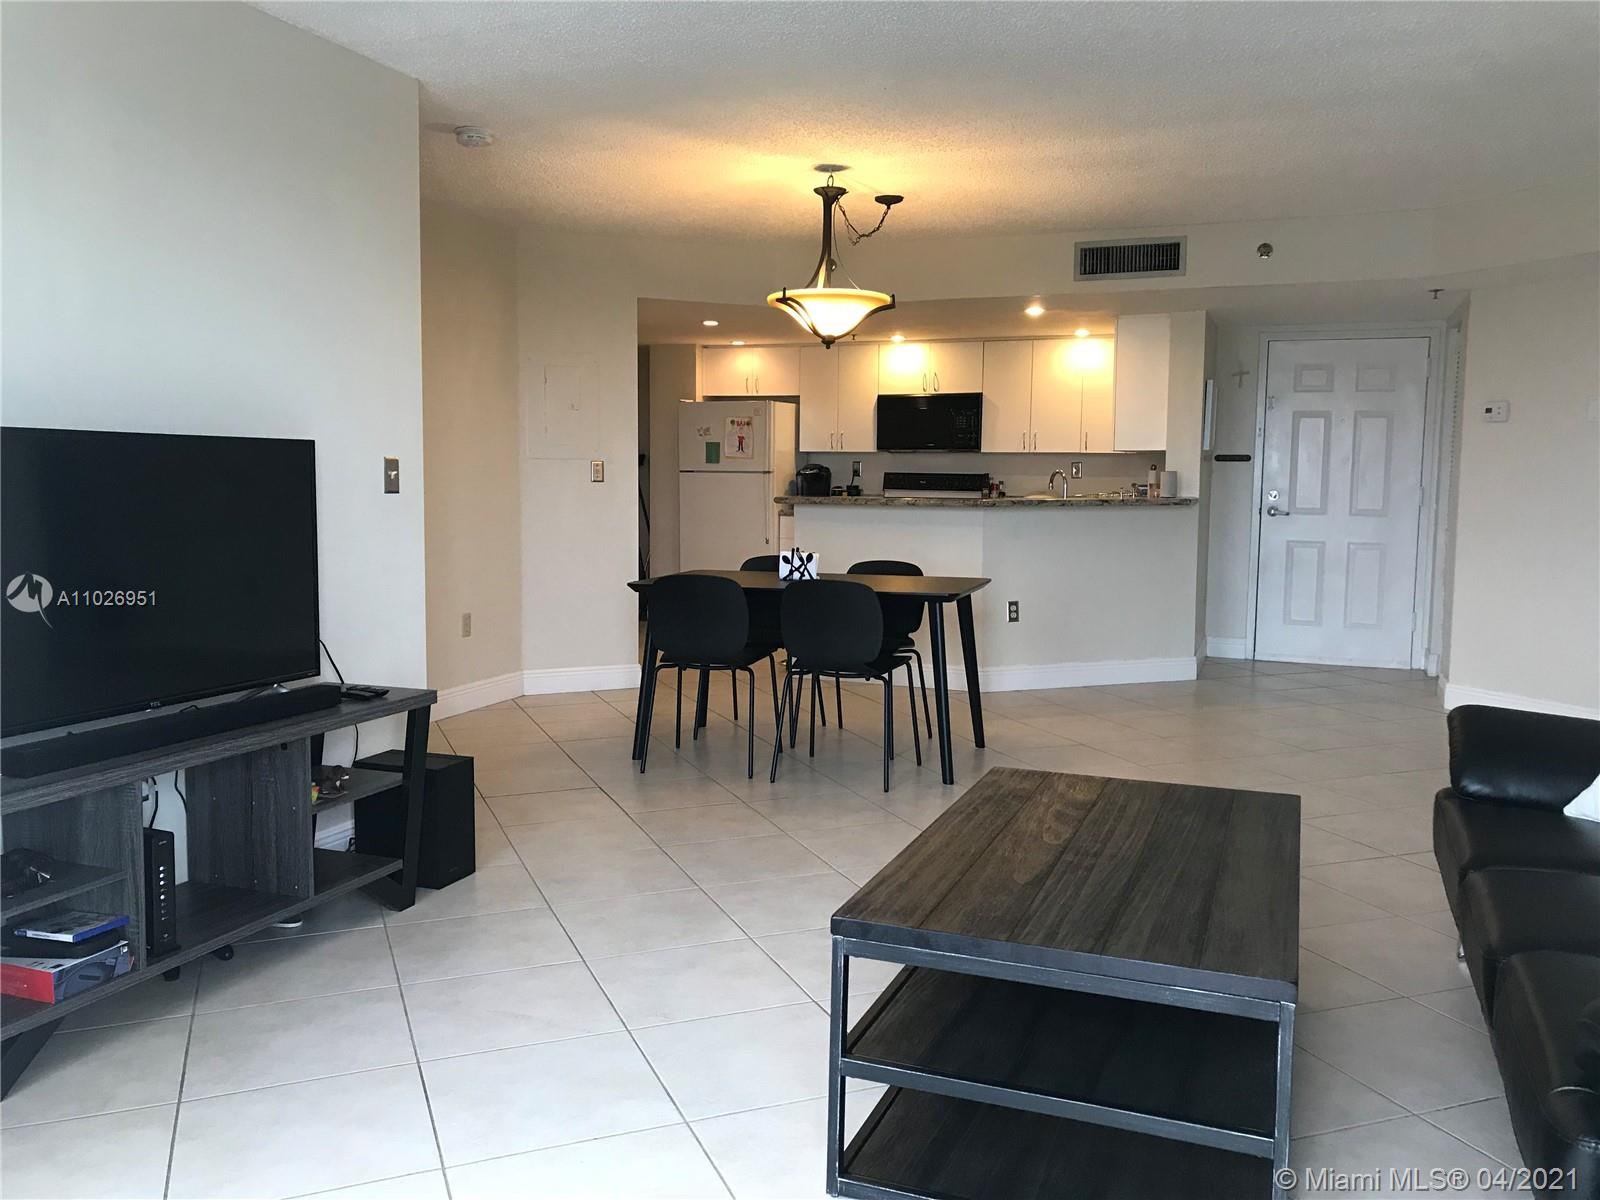 """GREAT LOCATION! 2/2 Corner unit on the 11th floor overlooking Beautiful Coral Gables - A block from """"Miracle Mile"""". Split floorplan with walk in closet, open kitchen with granite counter top, washer / dryer in the unit and tile throughout. Pool with outdoor kitchen, Business Center, Club Room, Security, Front Door Attendant, assigned covered parking as well as guest parking. ***Schedule on Showing Time*** Tenant Occupied till 5/30/21***"""